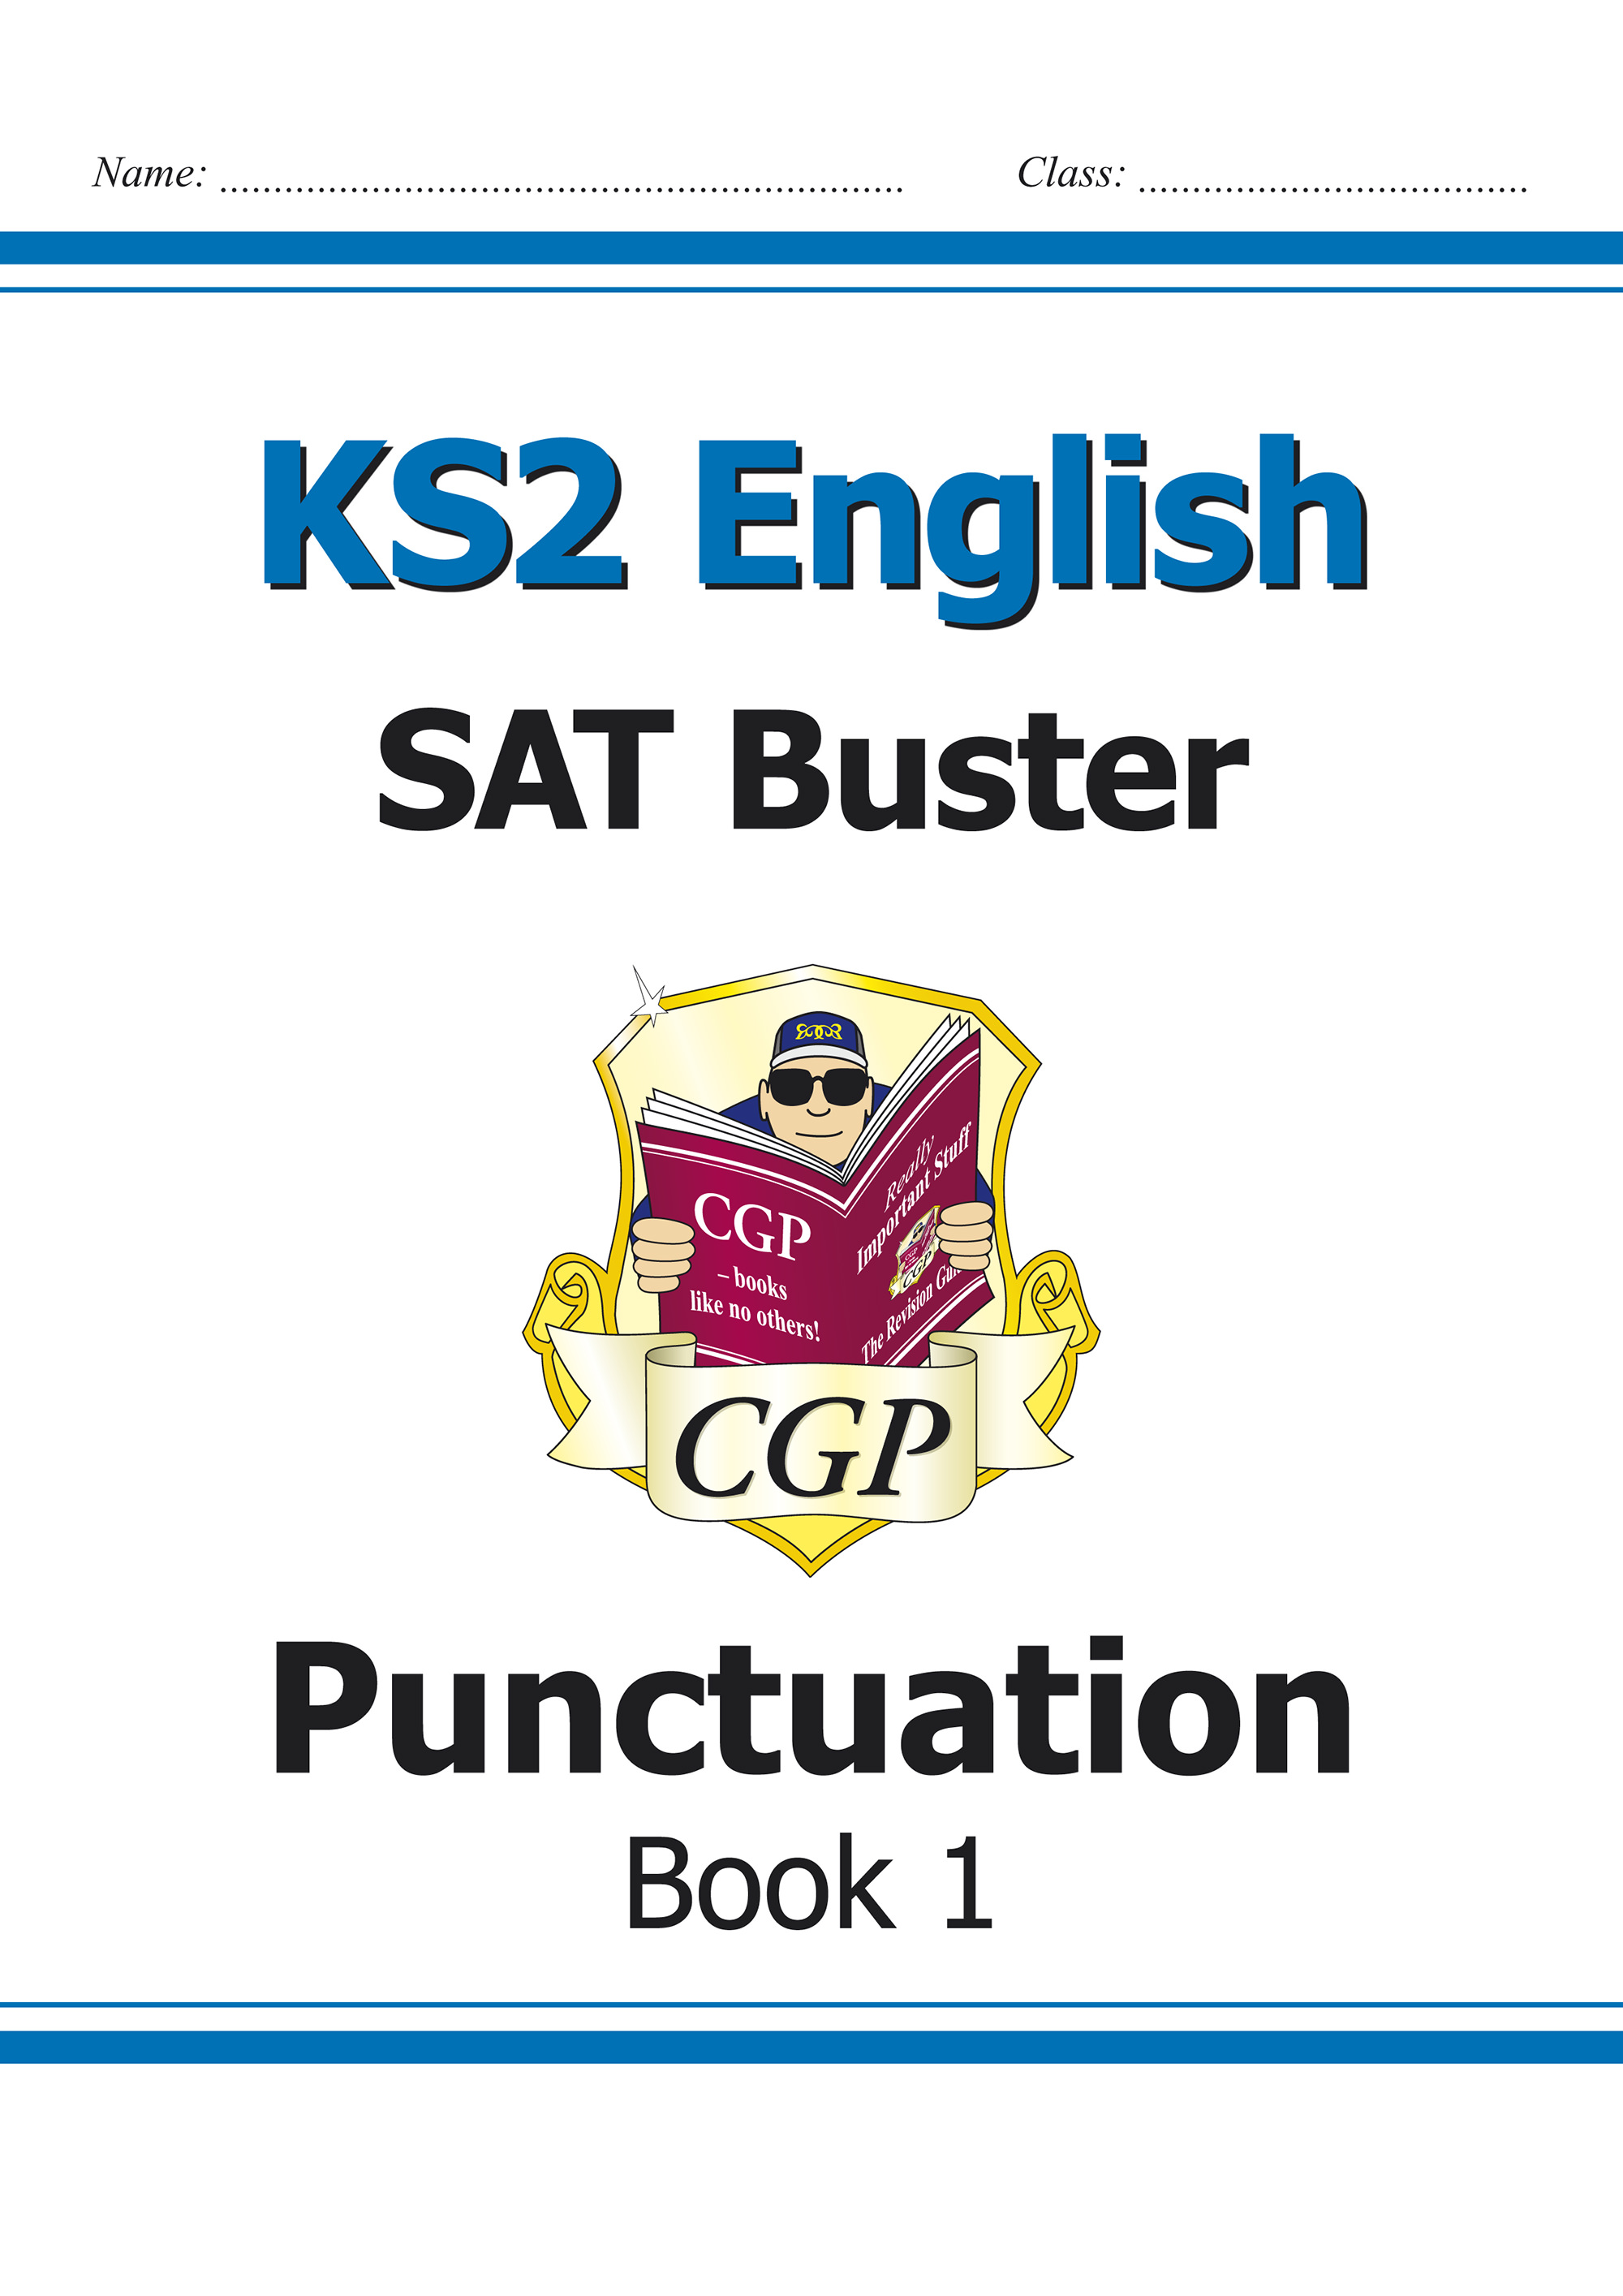 E6P23 - KS2 English SAT Buster: Punctuation Book 1 (for the 2020 tests)